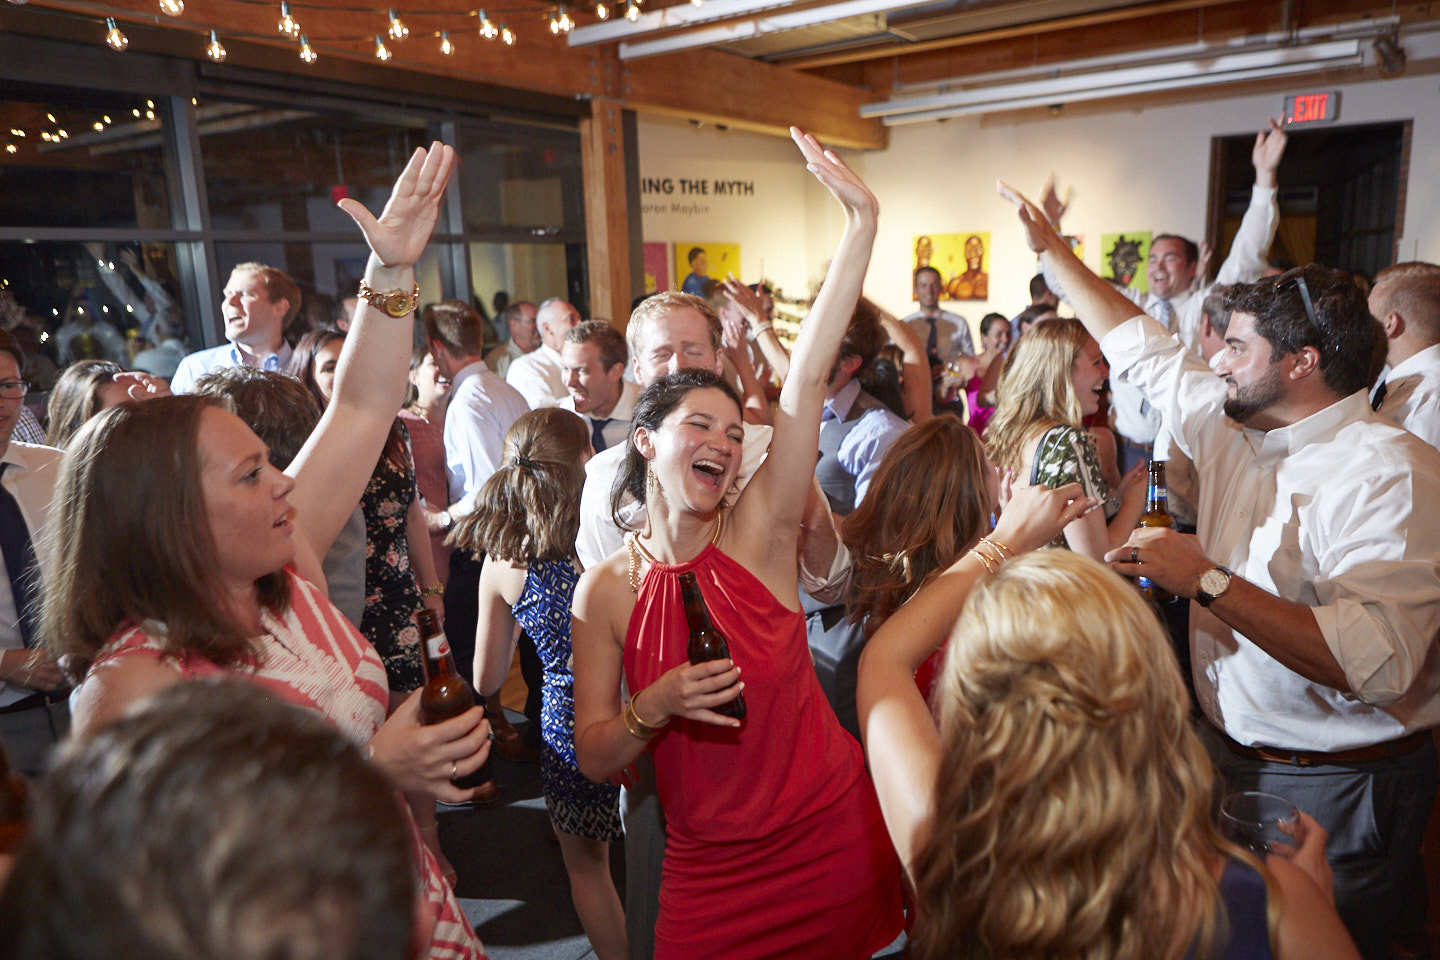 wedding guests dance with hands up